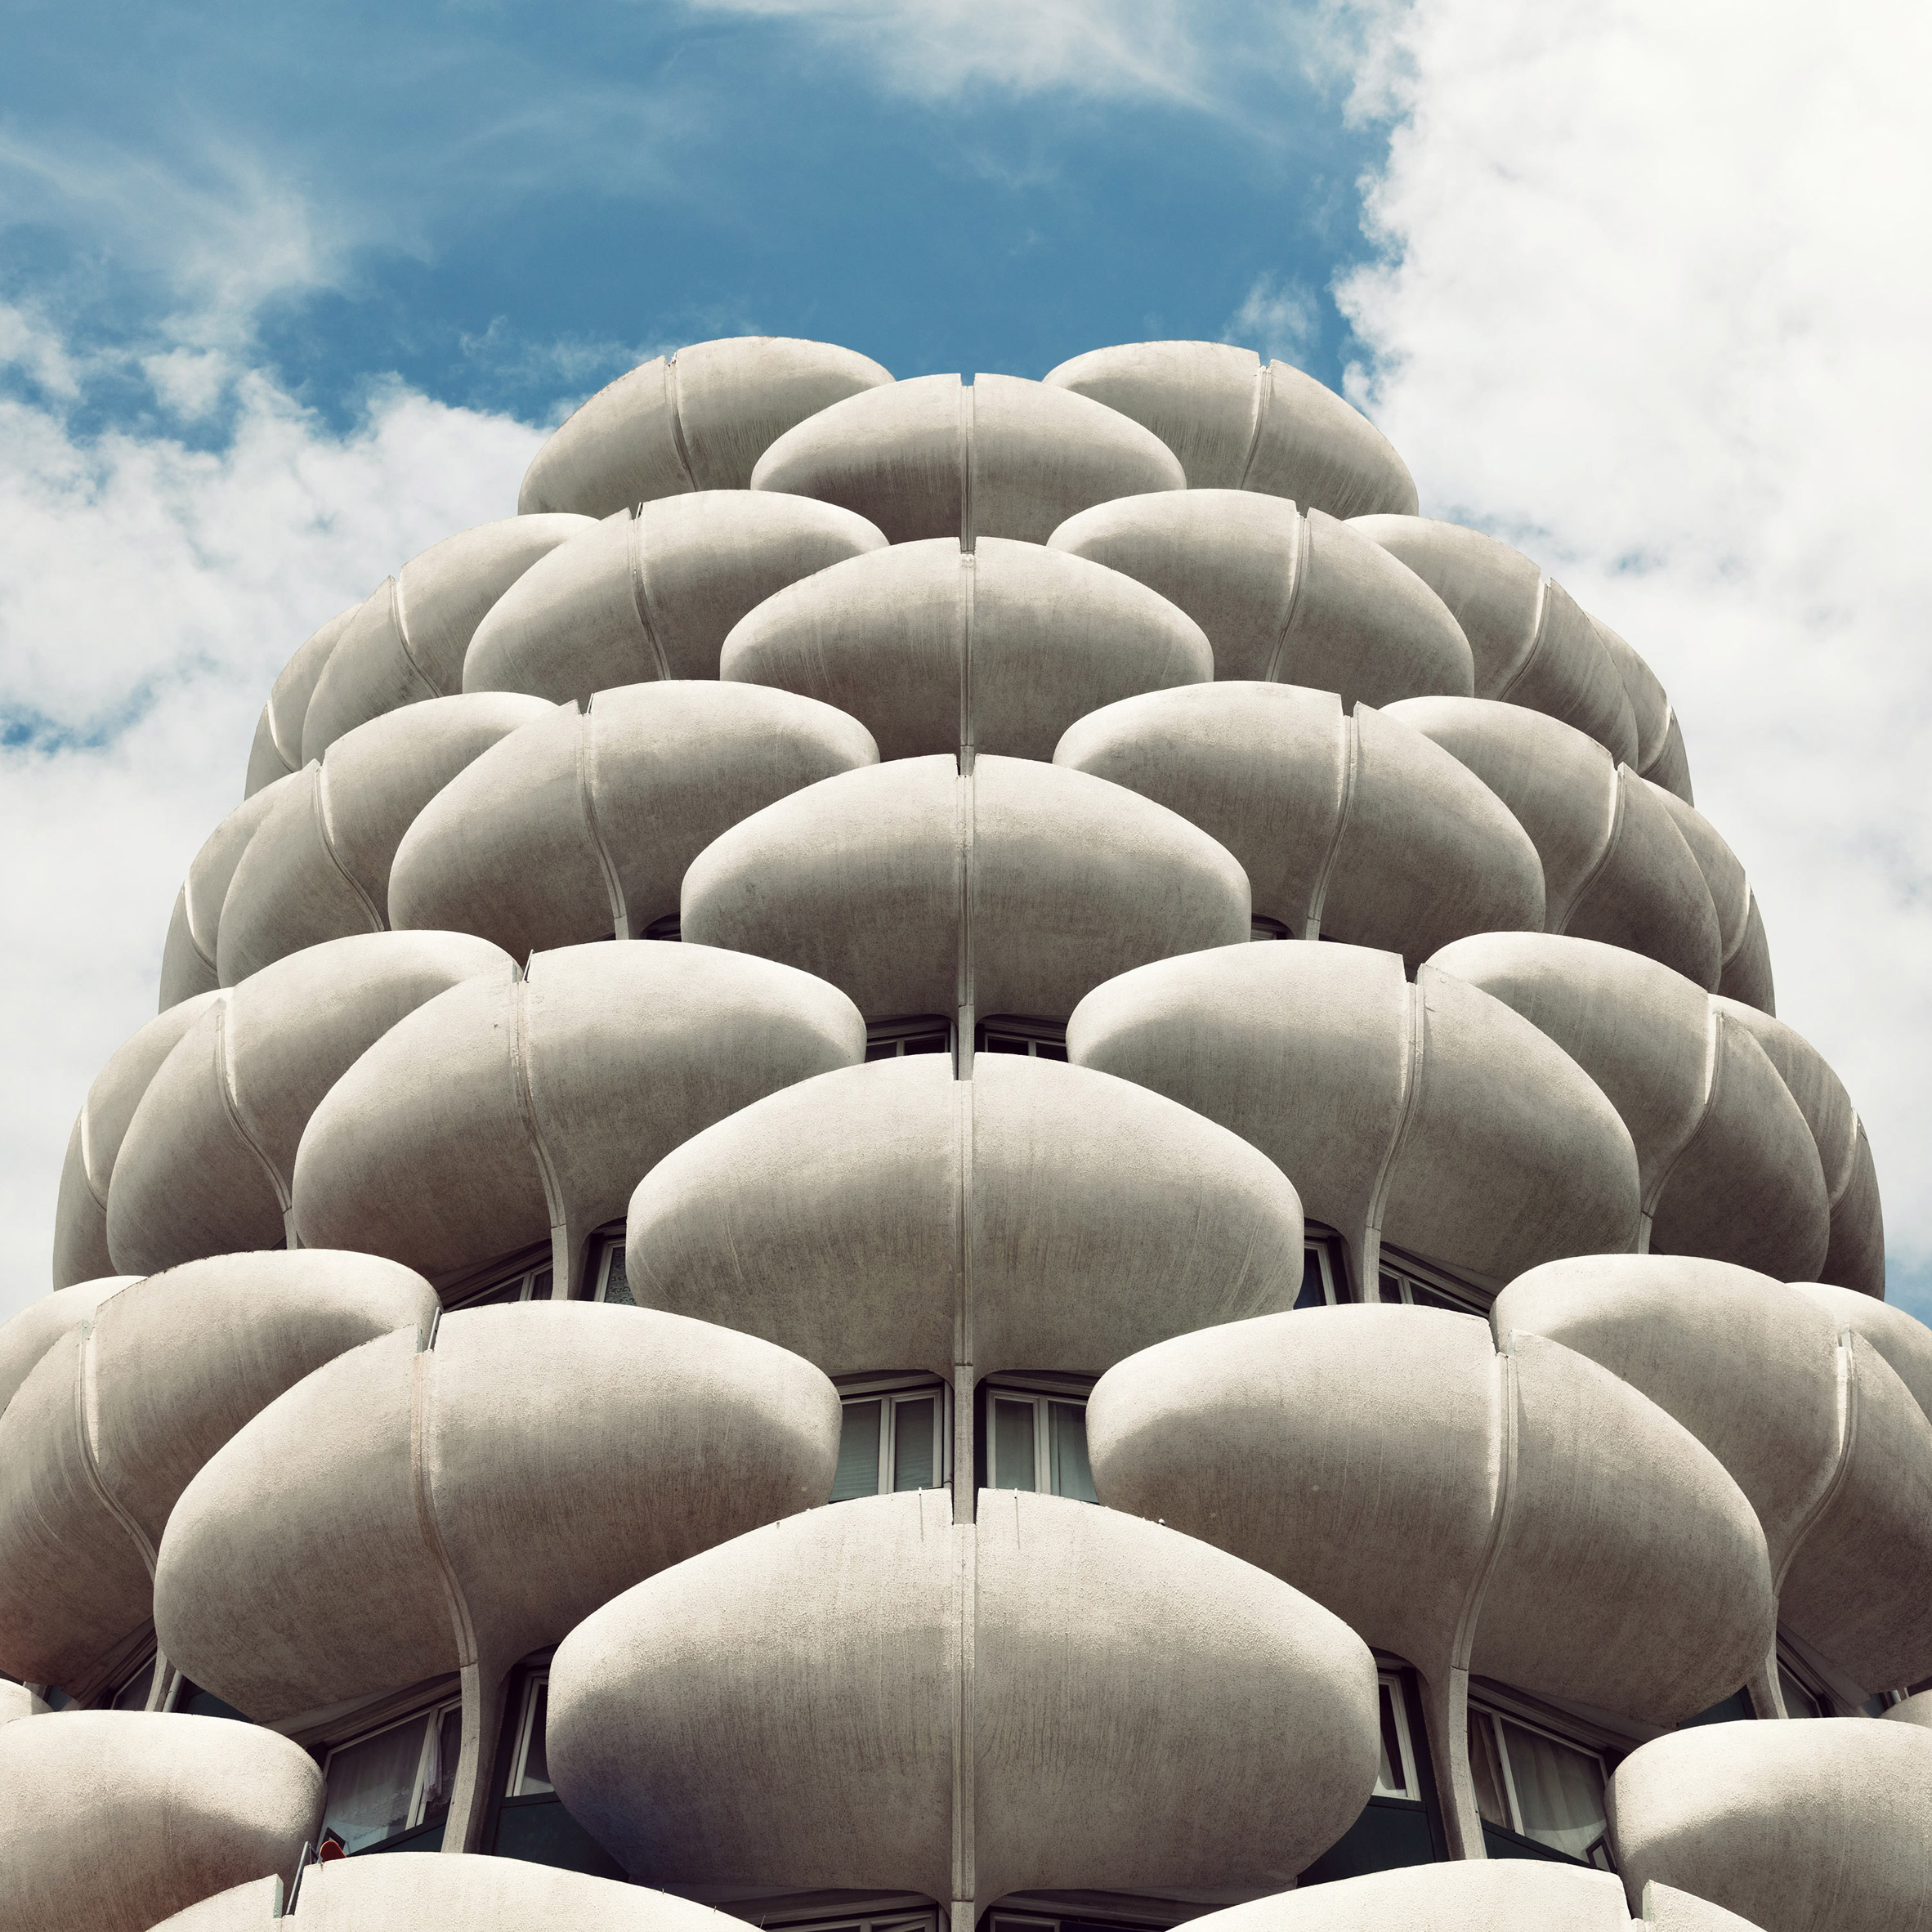 Paris' most eye-catching buildings take centre stage in Sebastian Weiss' latest photo series